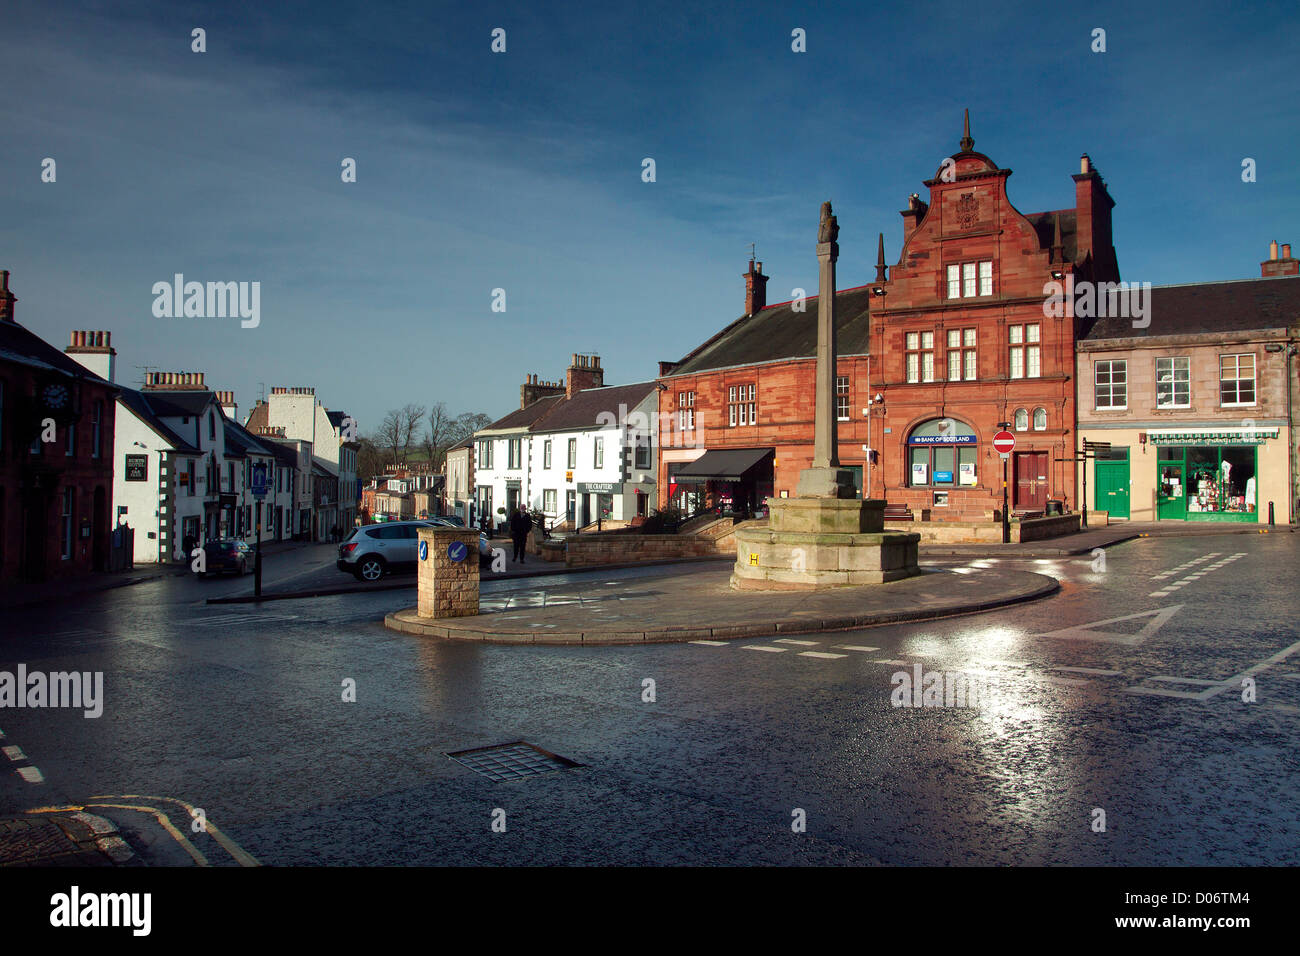 Market Square, Melrose, a village sitting on the banks of the River Tweed, Scottish Borders - Stock Image